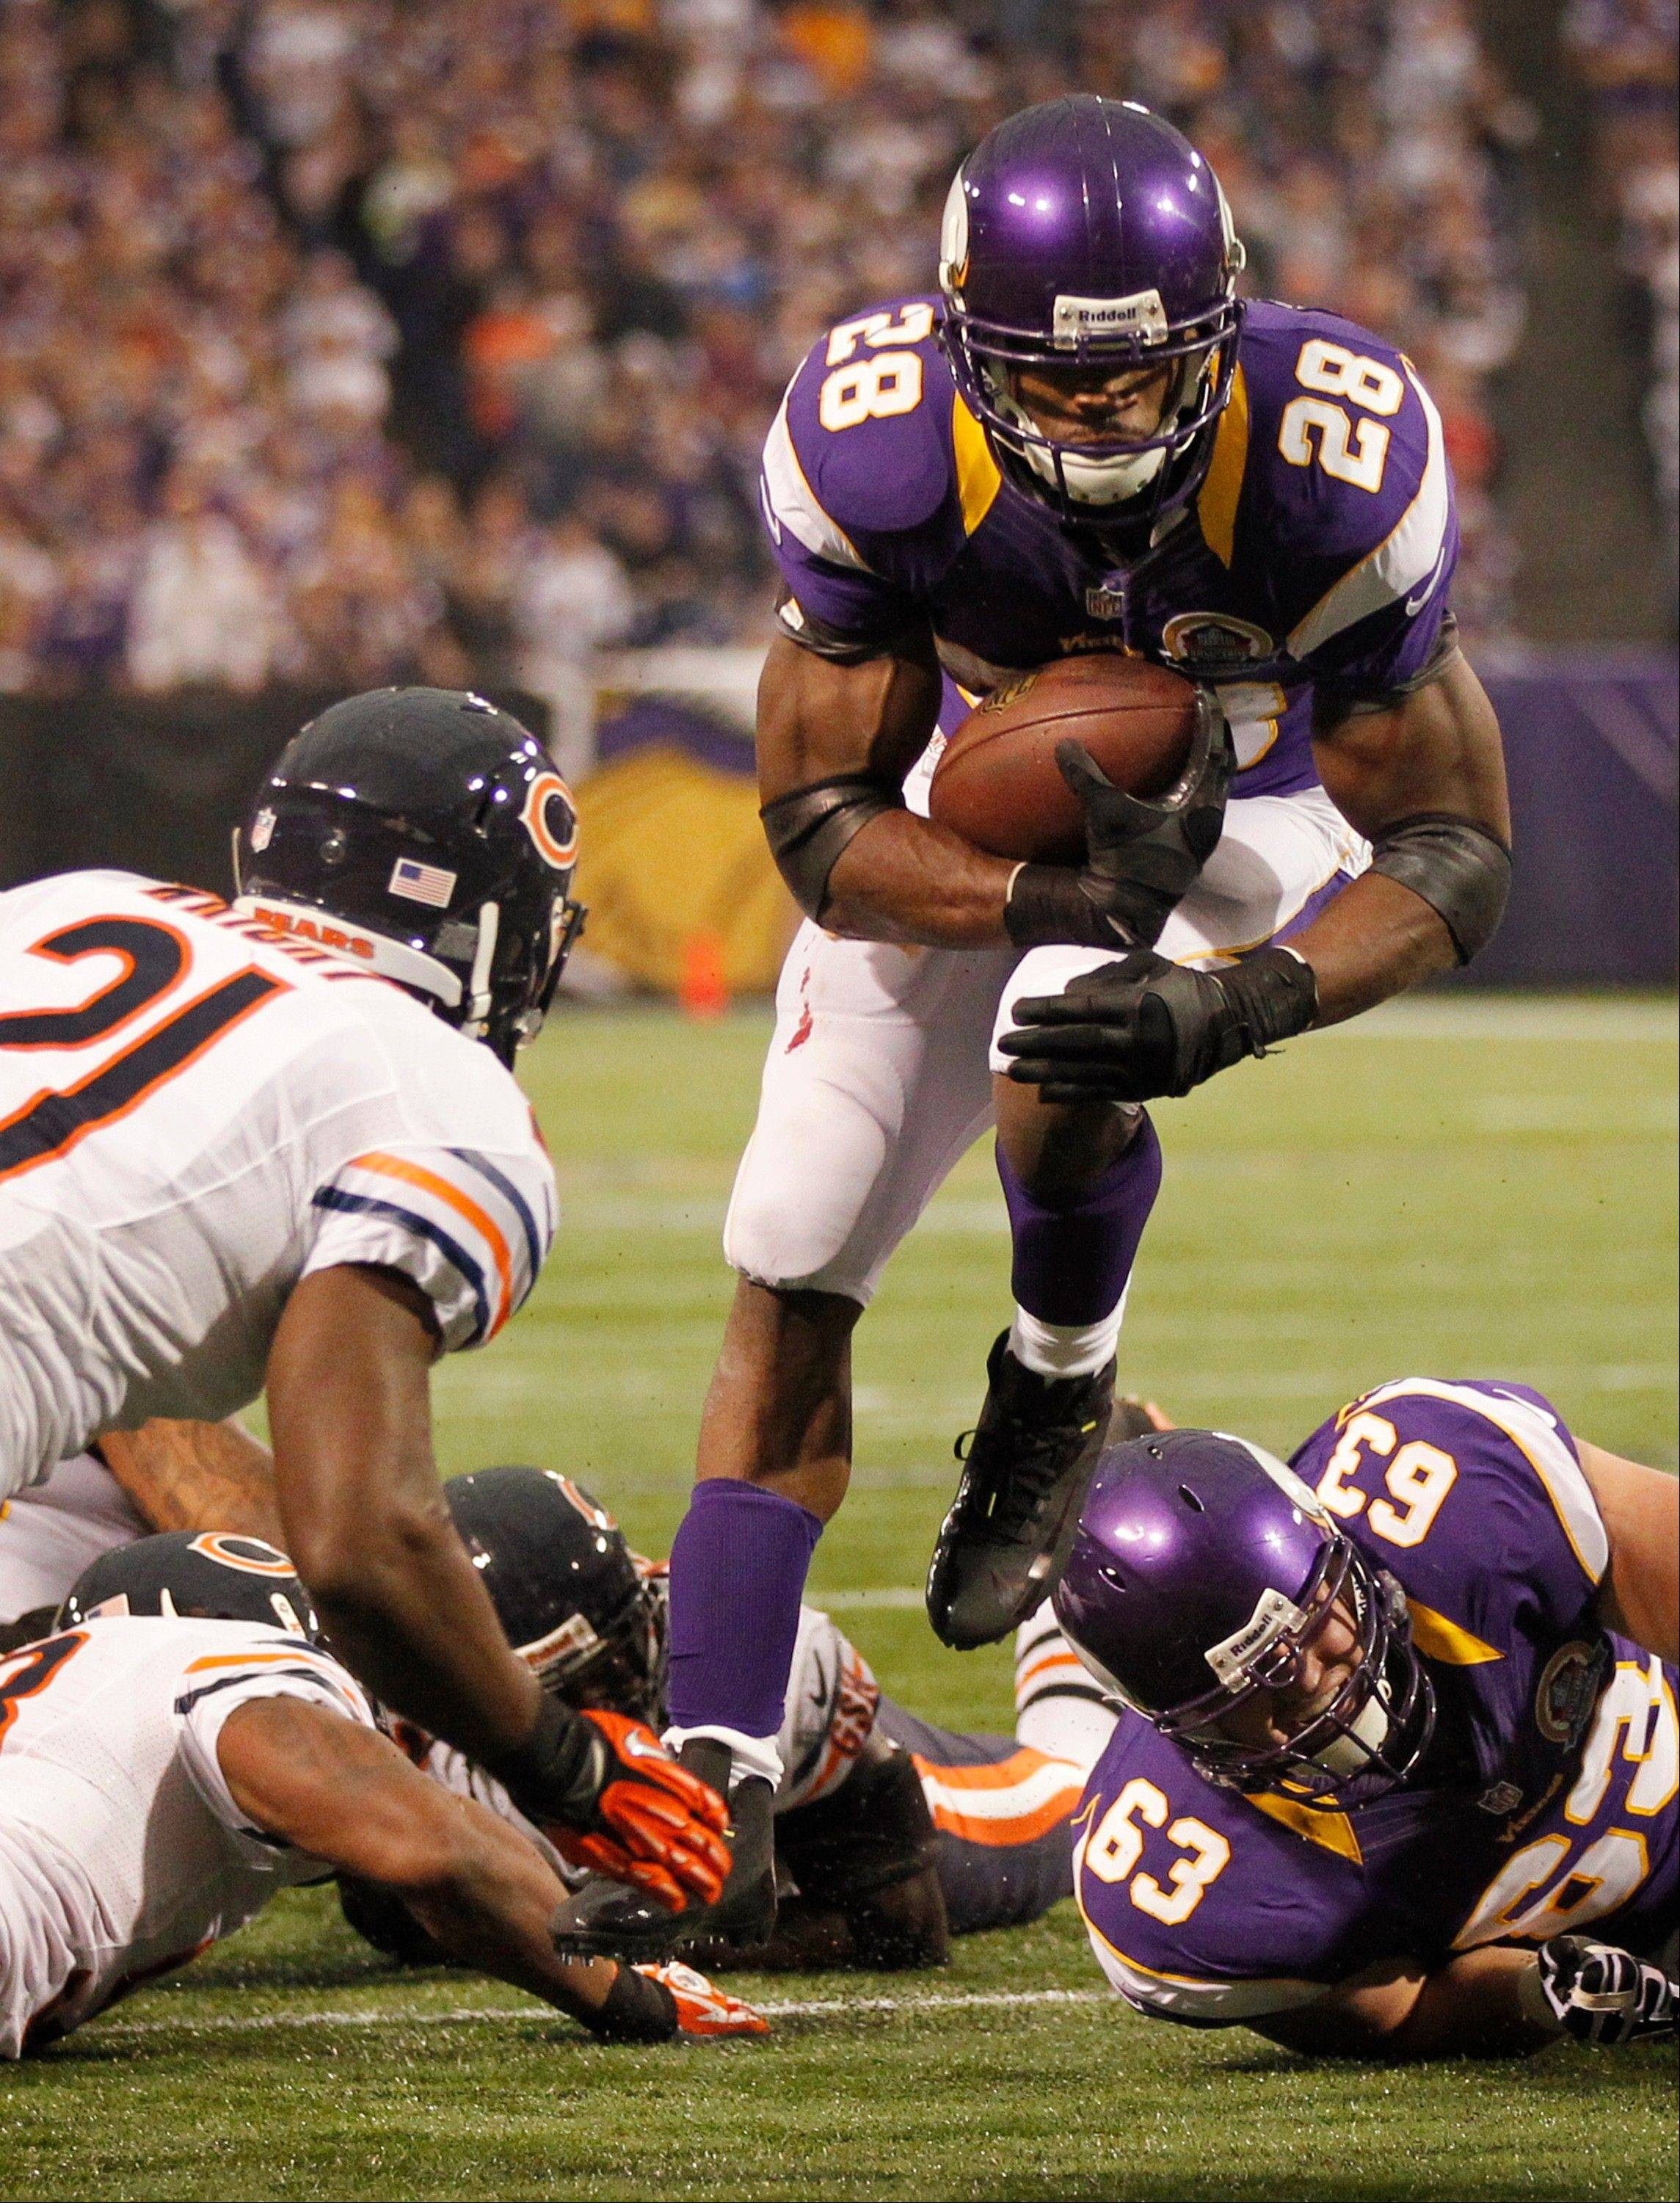 The Bears have had some success against Vikings running back Adrian Peterson, but shutting him down is almost impossible.